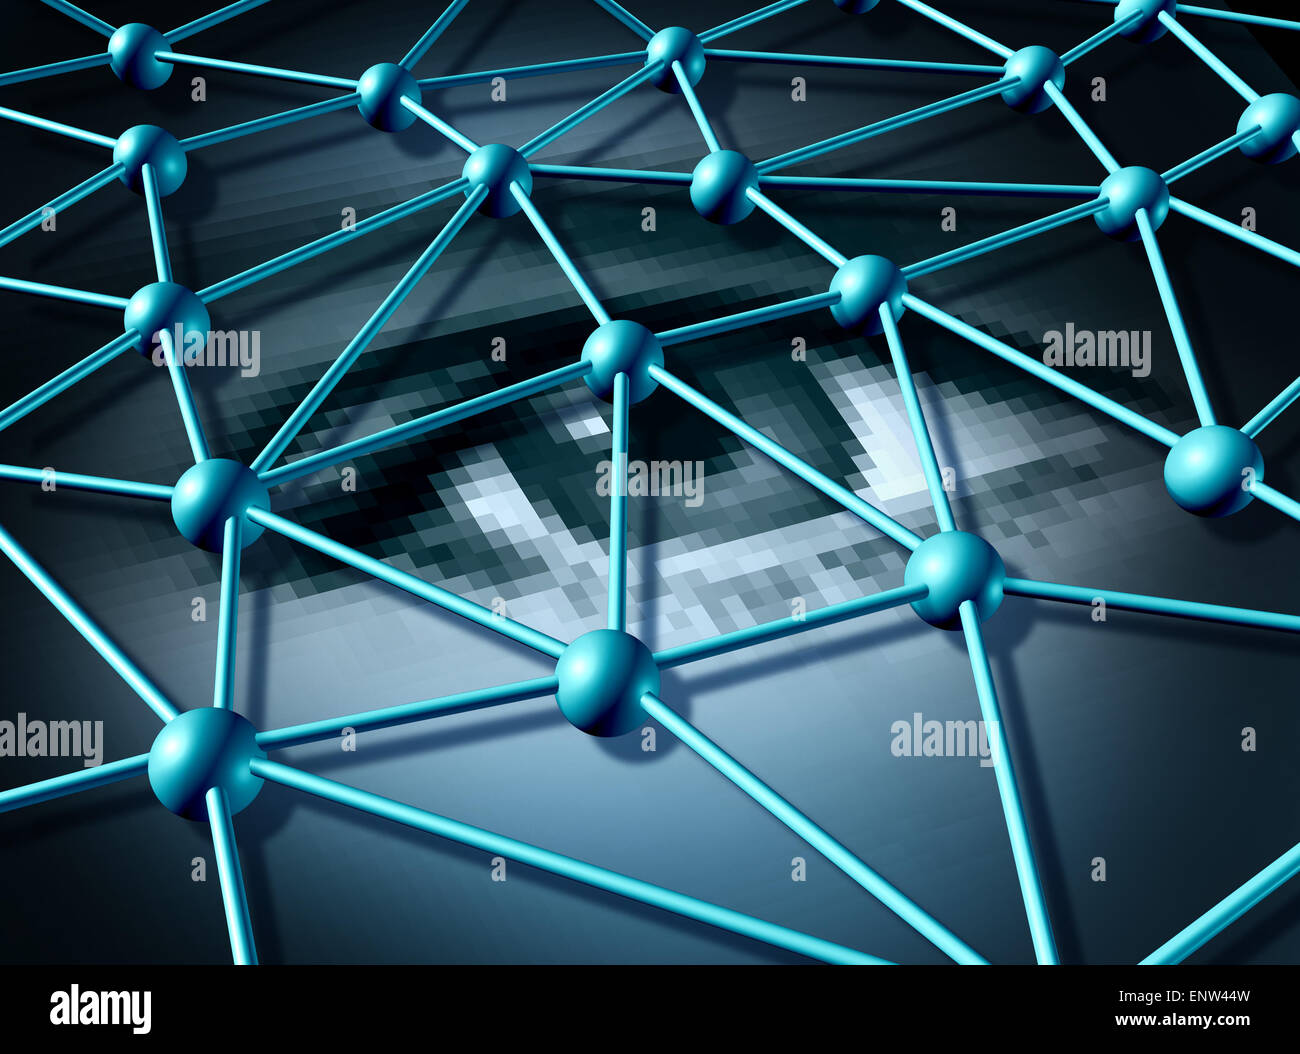 Personal data and password login information protection technology concept as a three dimensional connected network - Stock Image